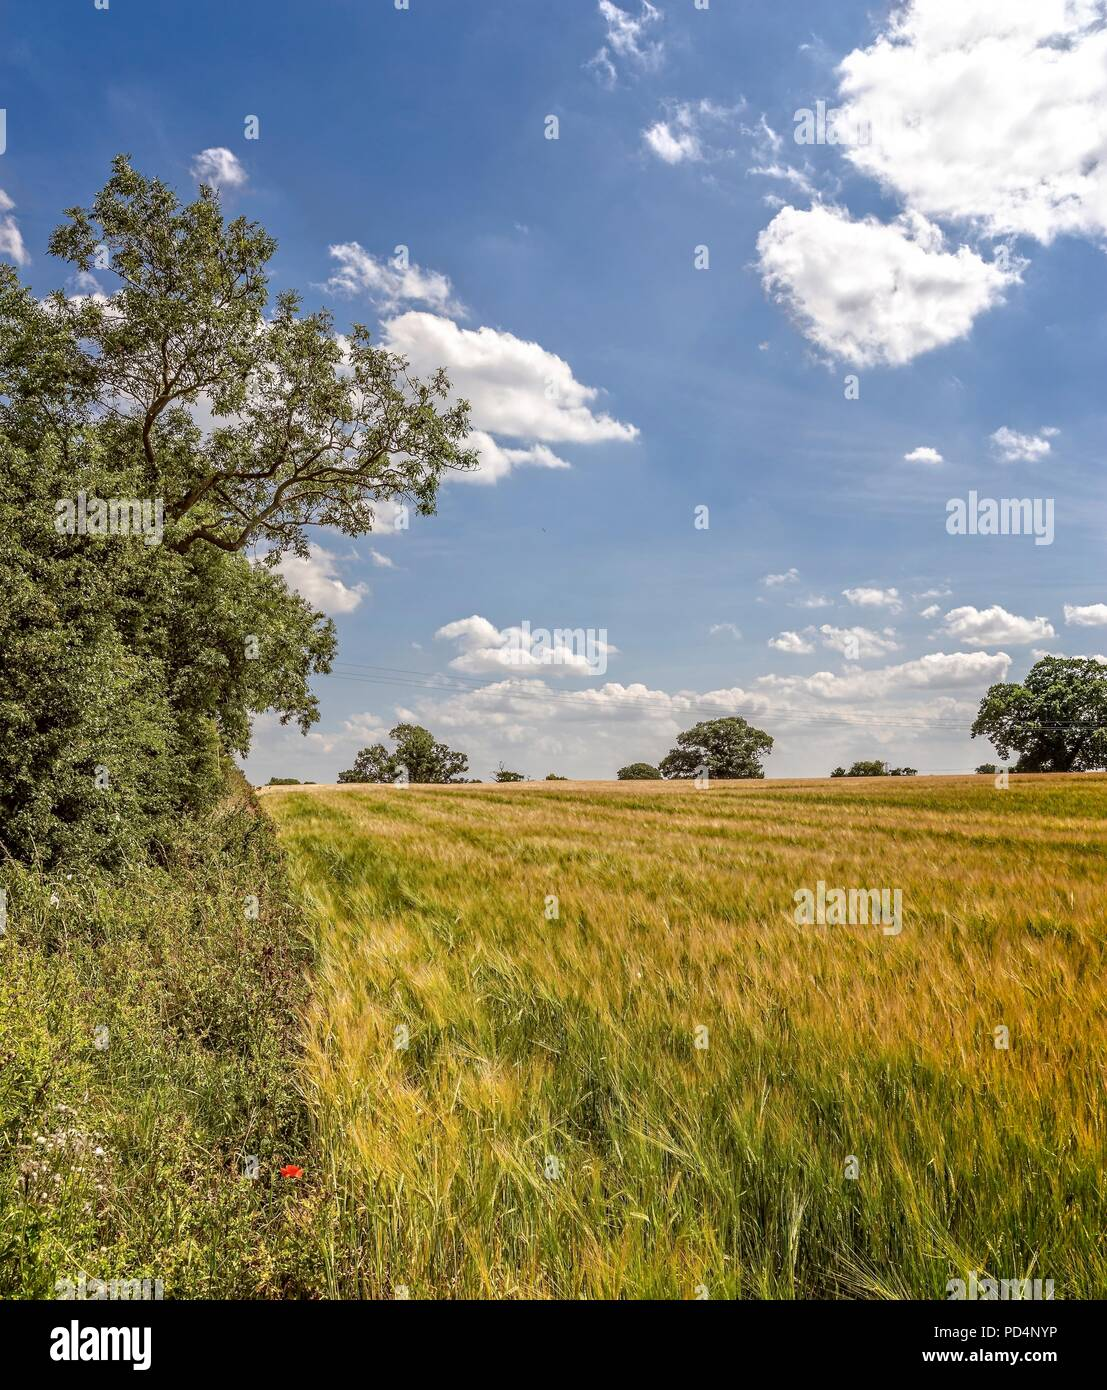 Striped field of ripening crops with trees to one side and in the distance. (Towthorpe, North Yorkshire). - Stock Image